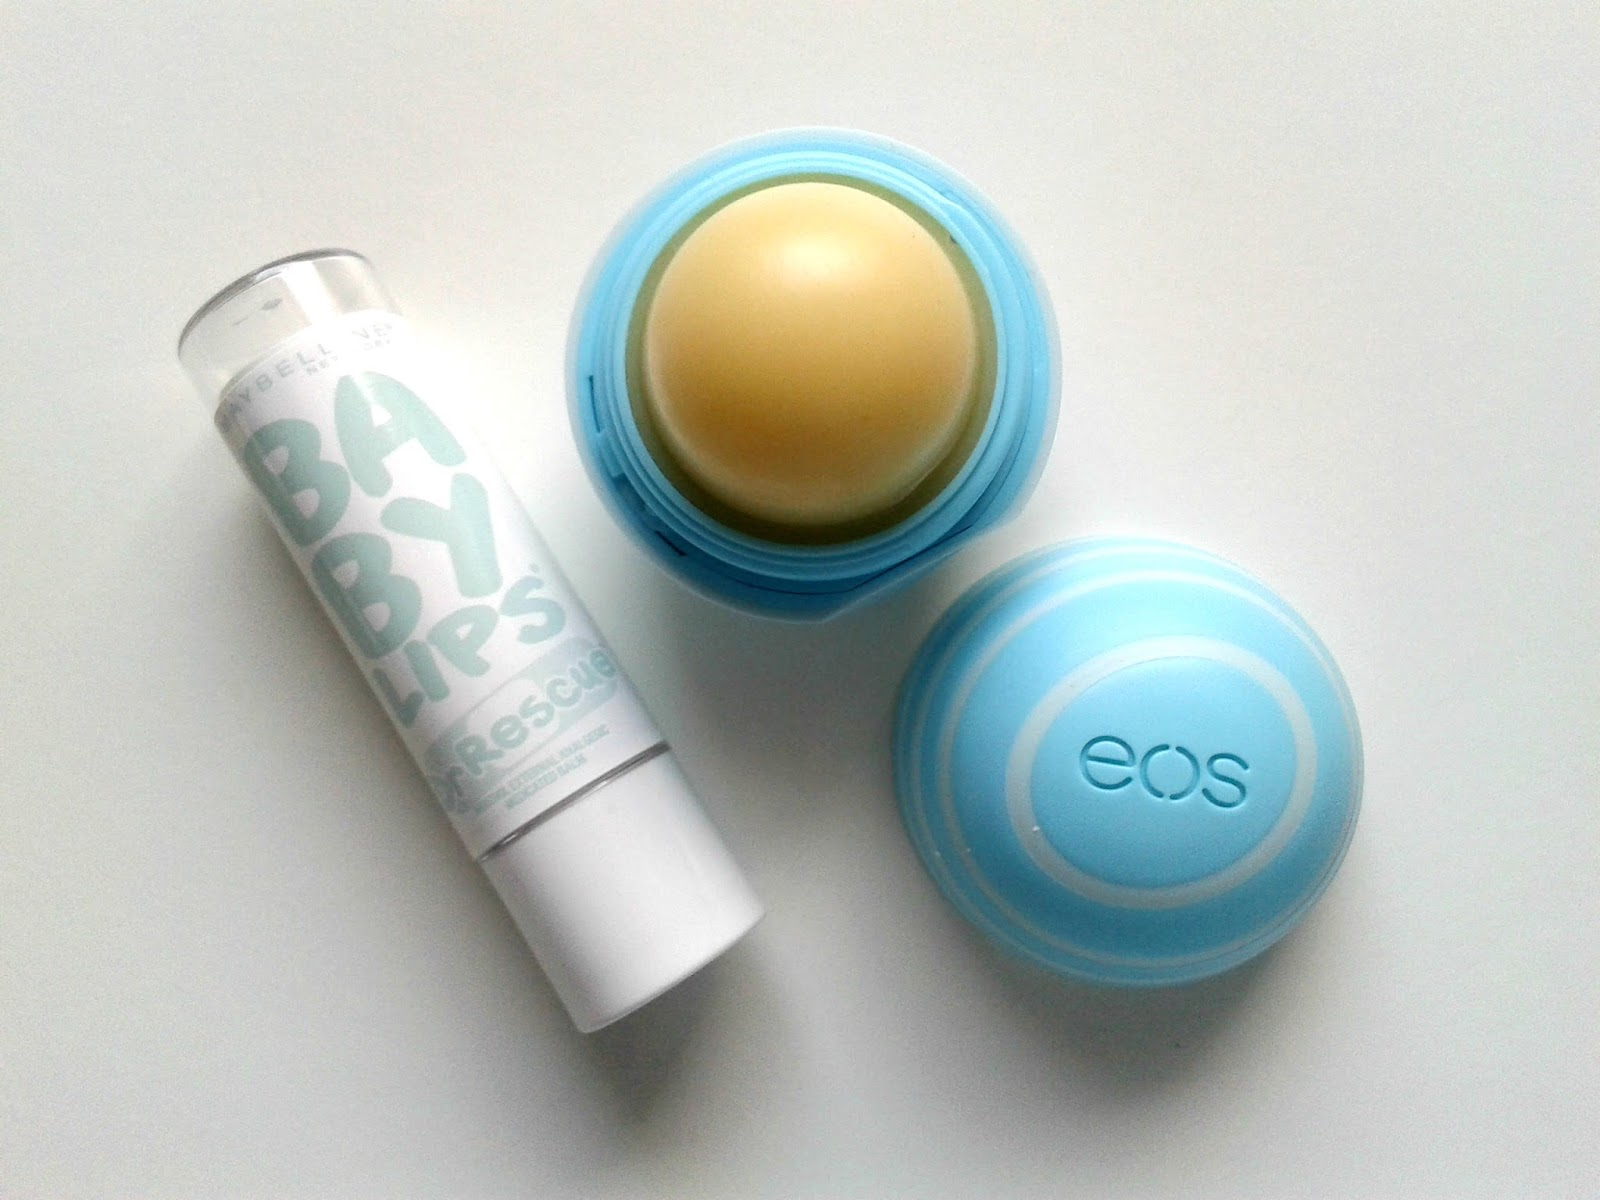 Dry Skin Maybelline Baby Lips Dr Rescue Medicated Lip Balm in Too Cool eos Vanilla Mint Lip Balm